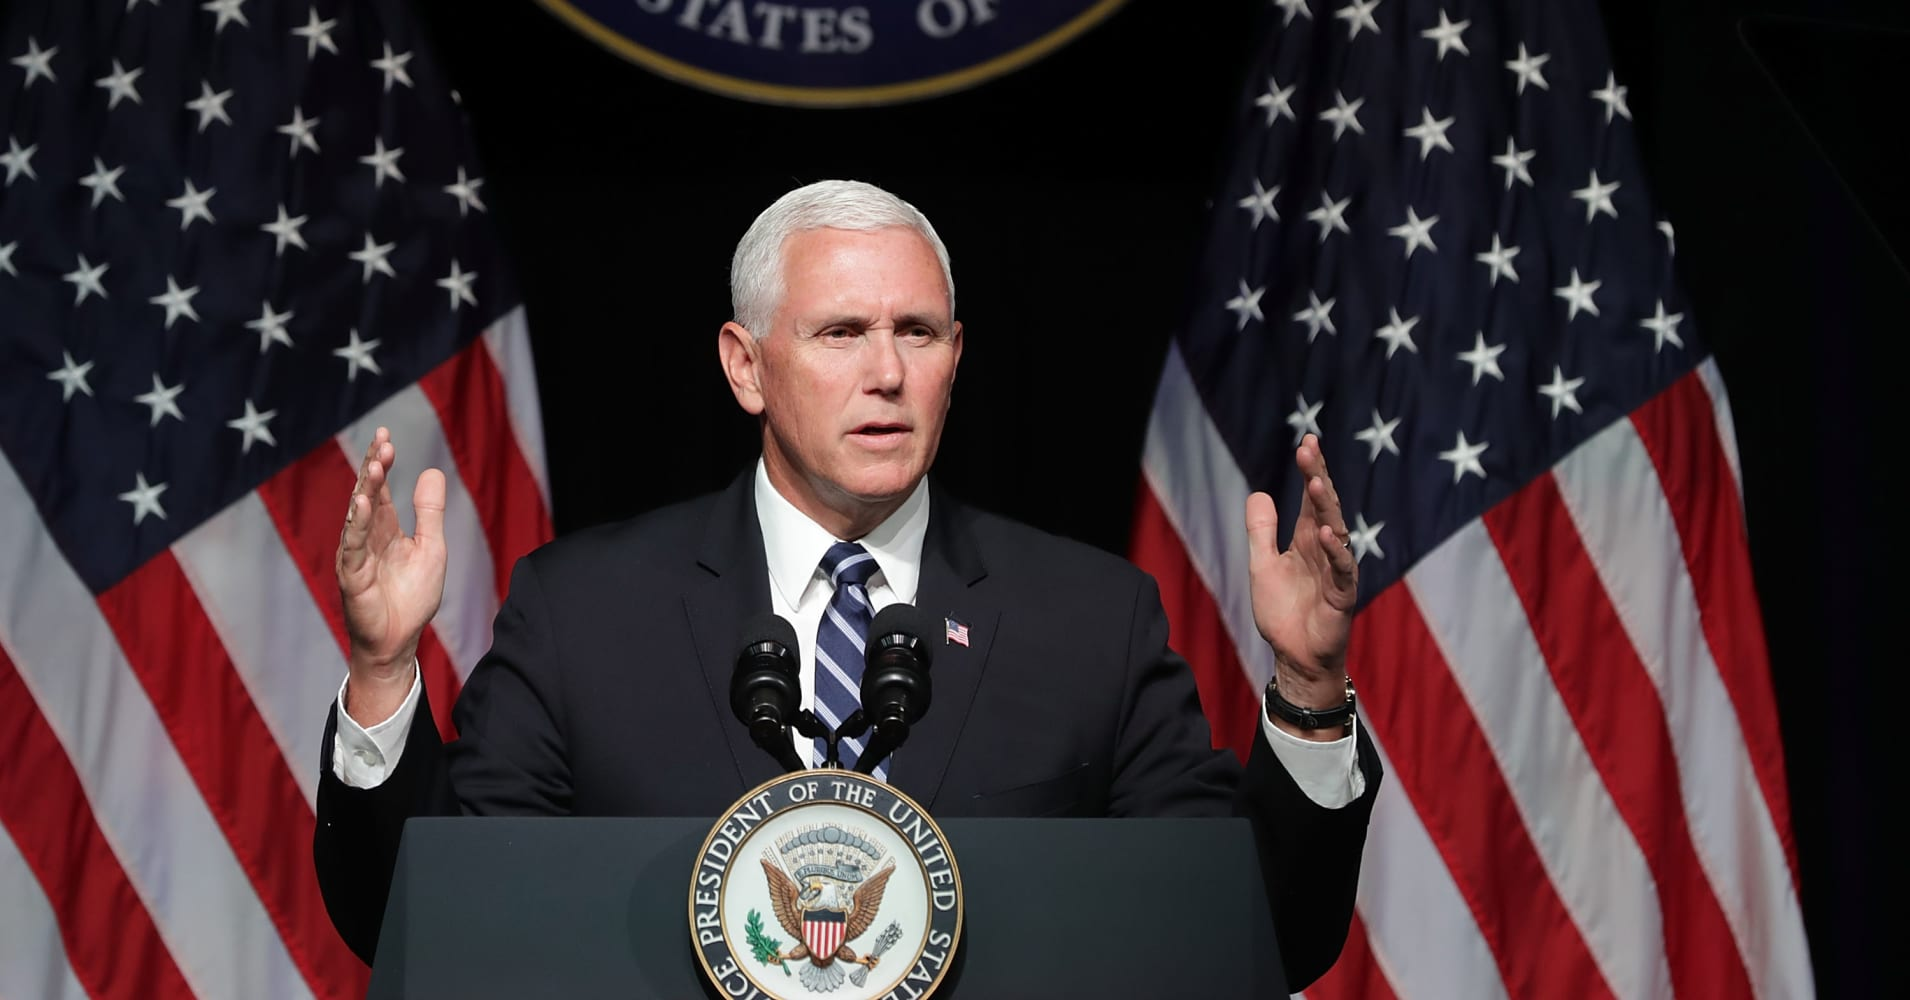 https://www.cnbc.com/2018/08/09/pence-unveils-plan-for-congress-to-create-space-force-by-2020.html